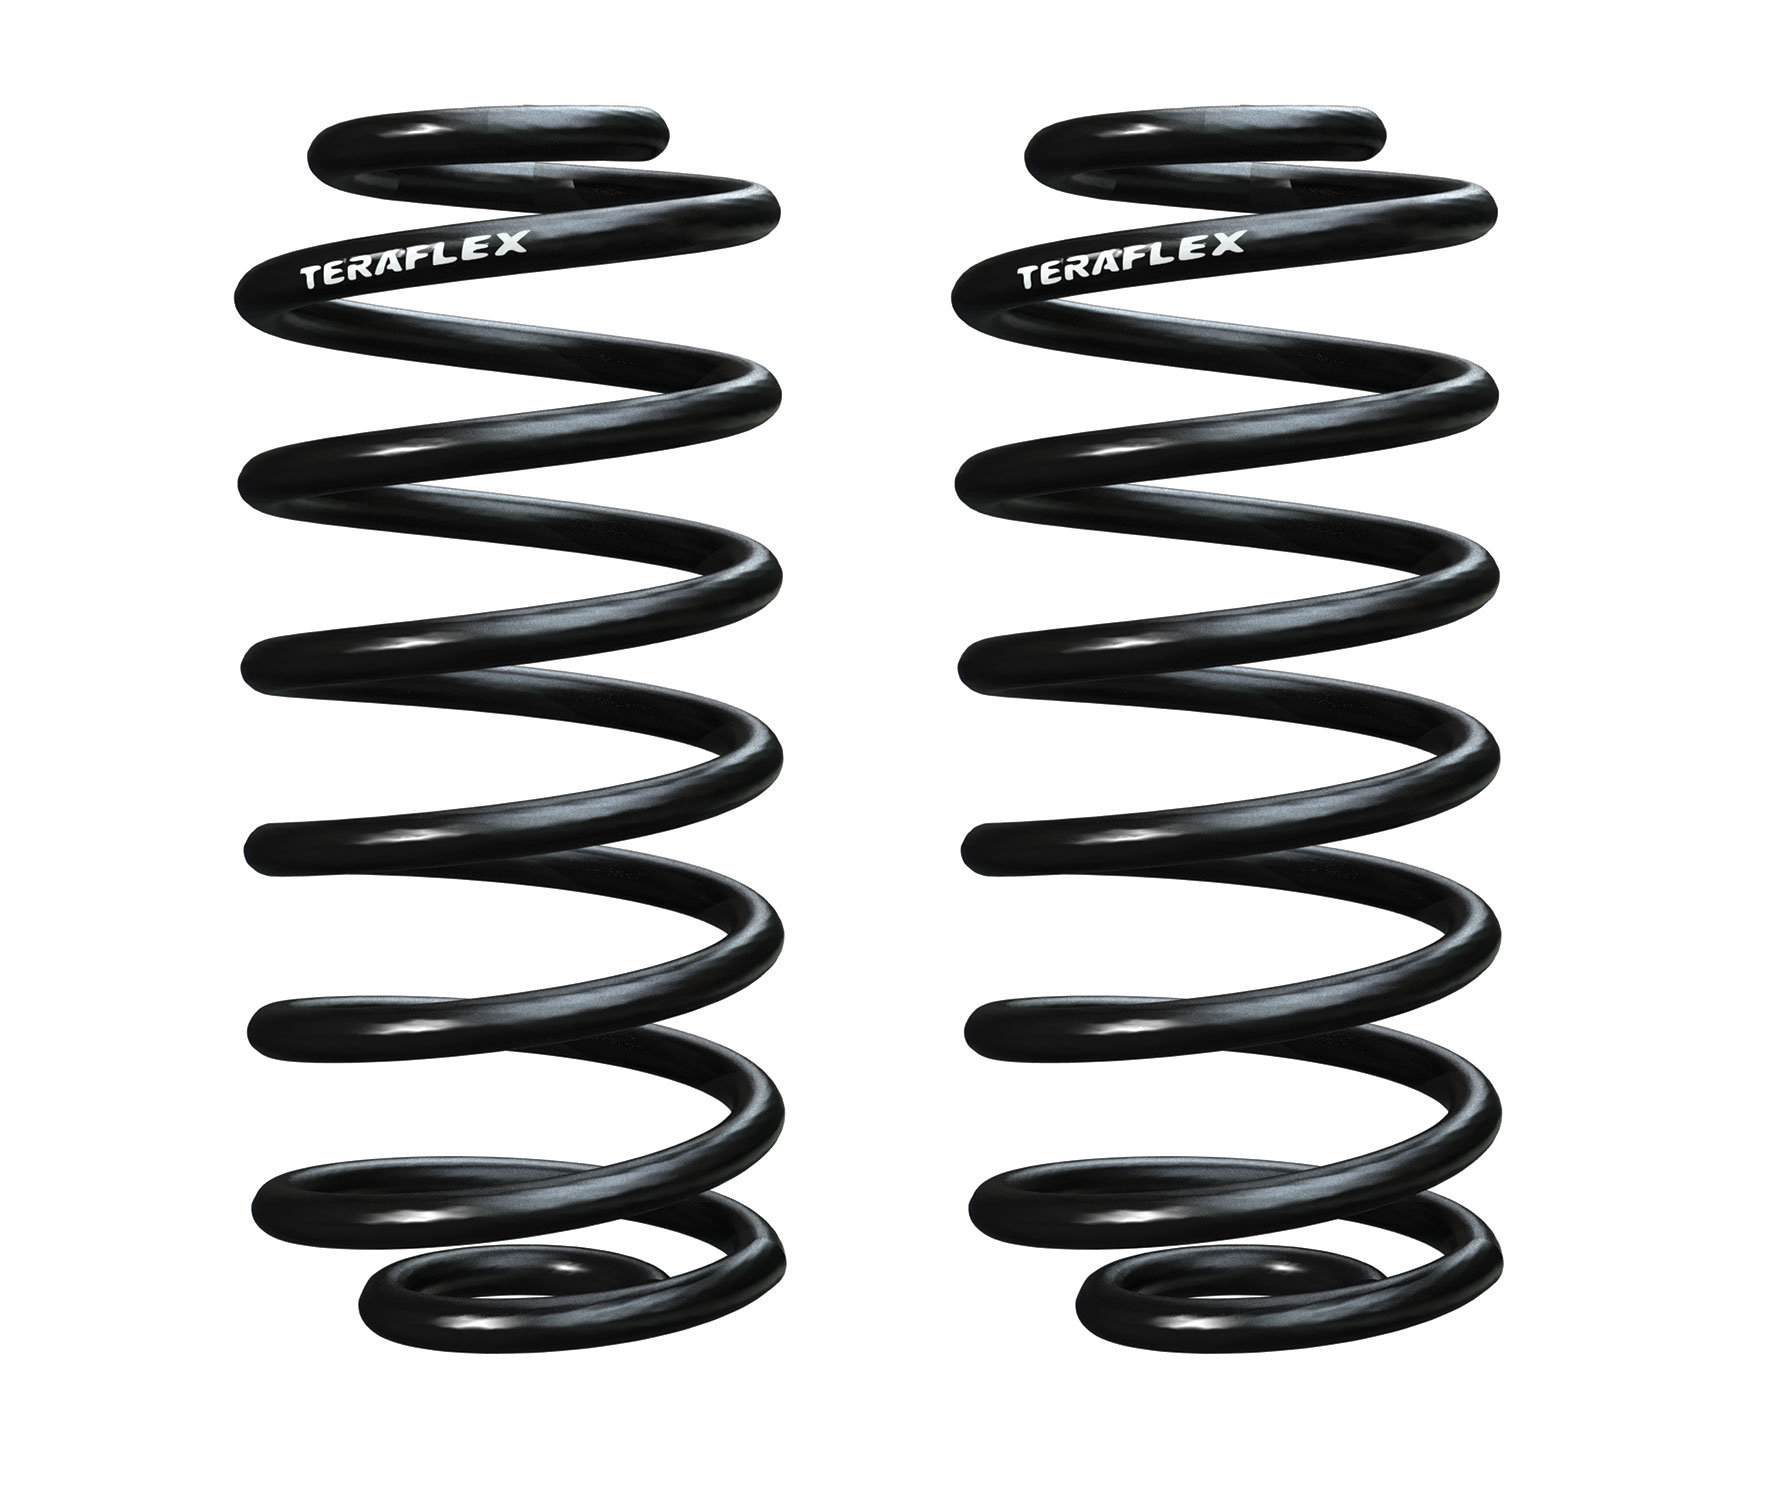 Teraflex Rear Coil Springs 3in - TJ/LJ